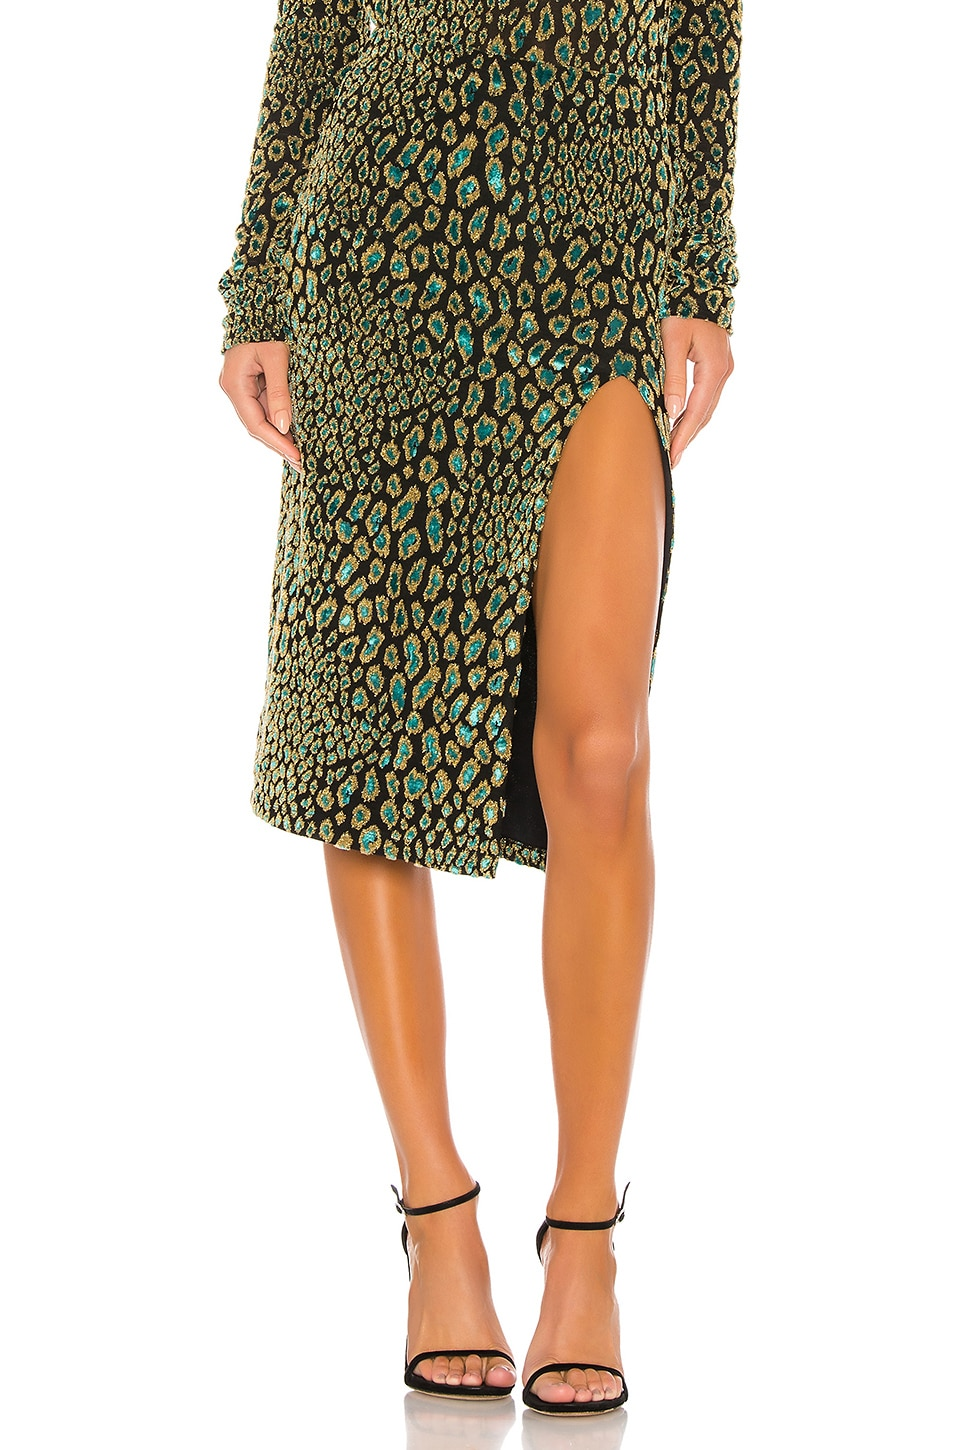 Caroline Constas Pencil Skirt in Teal